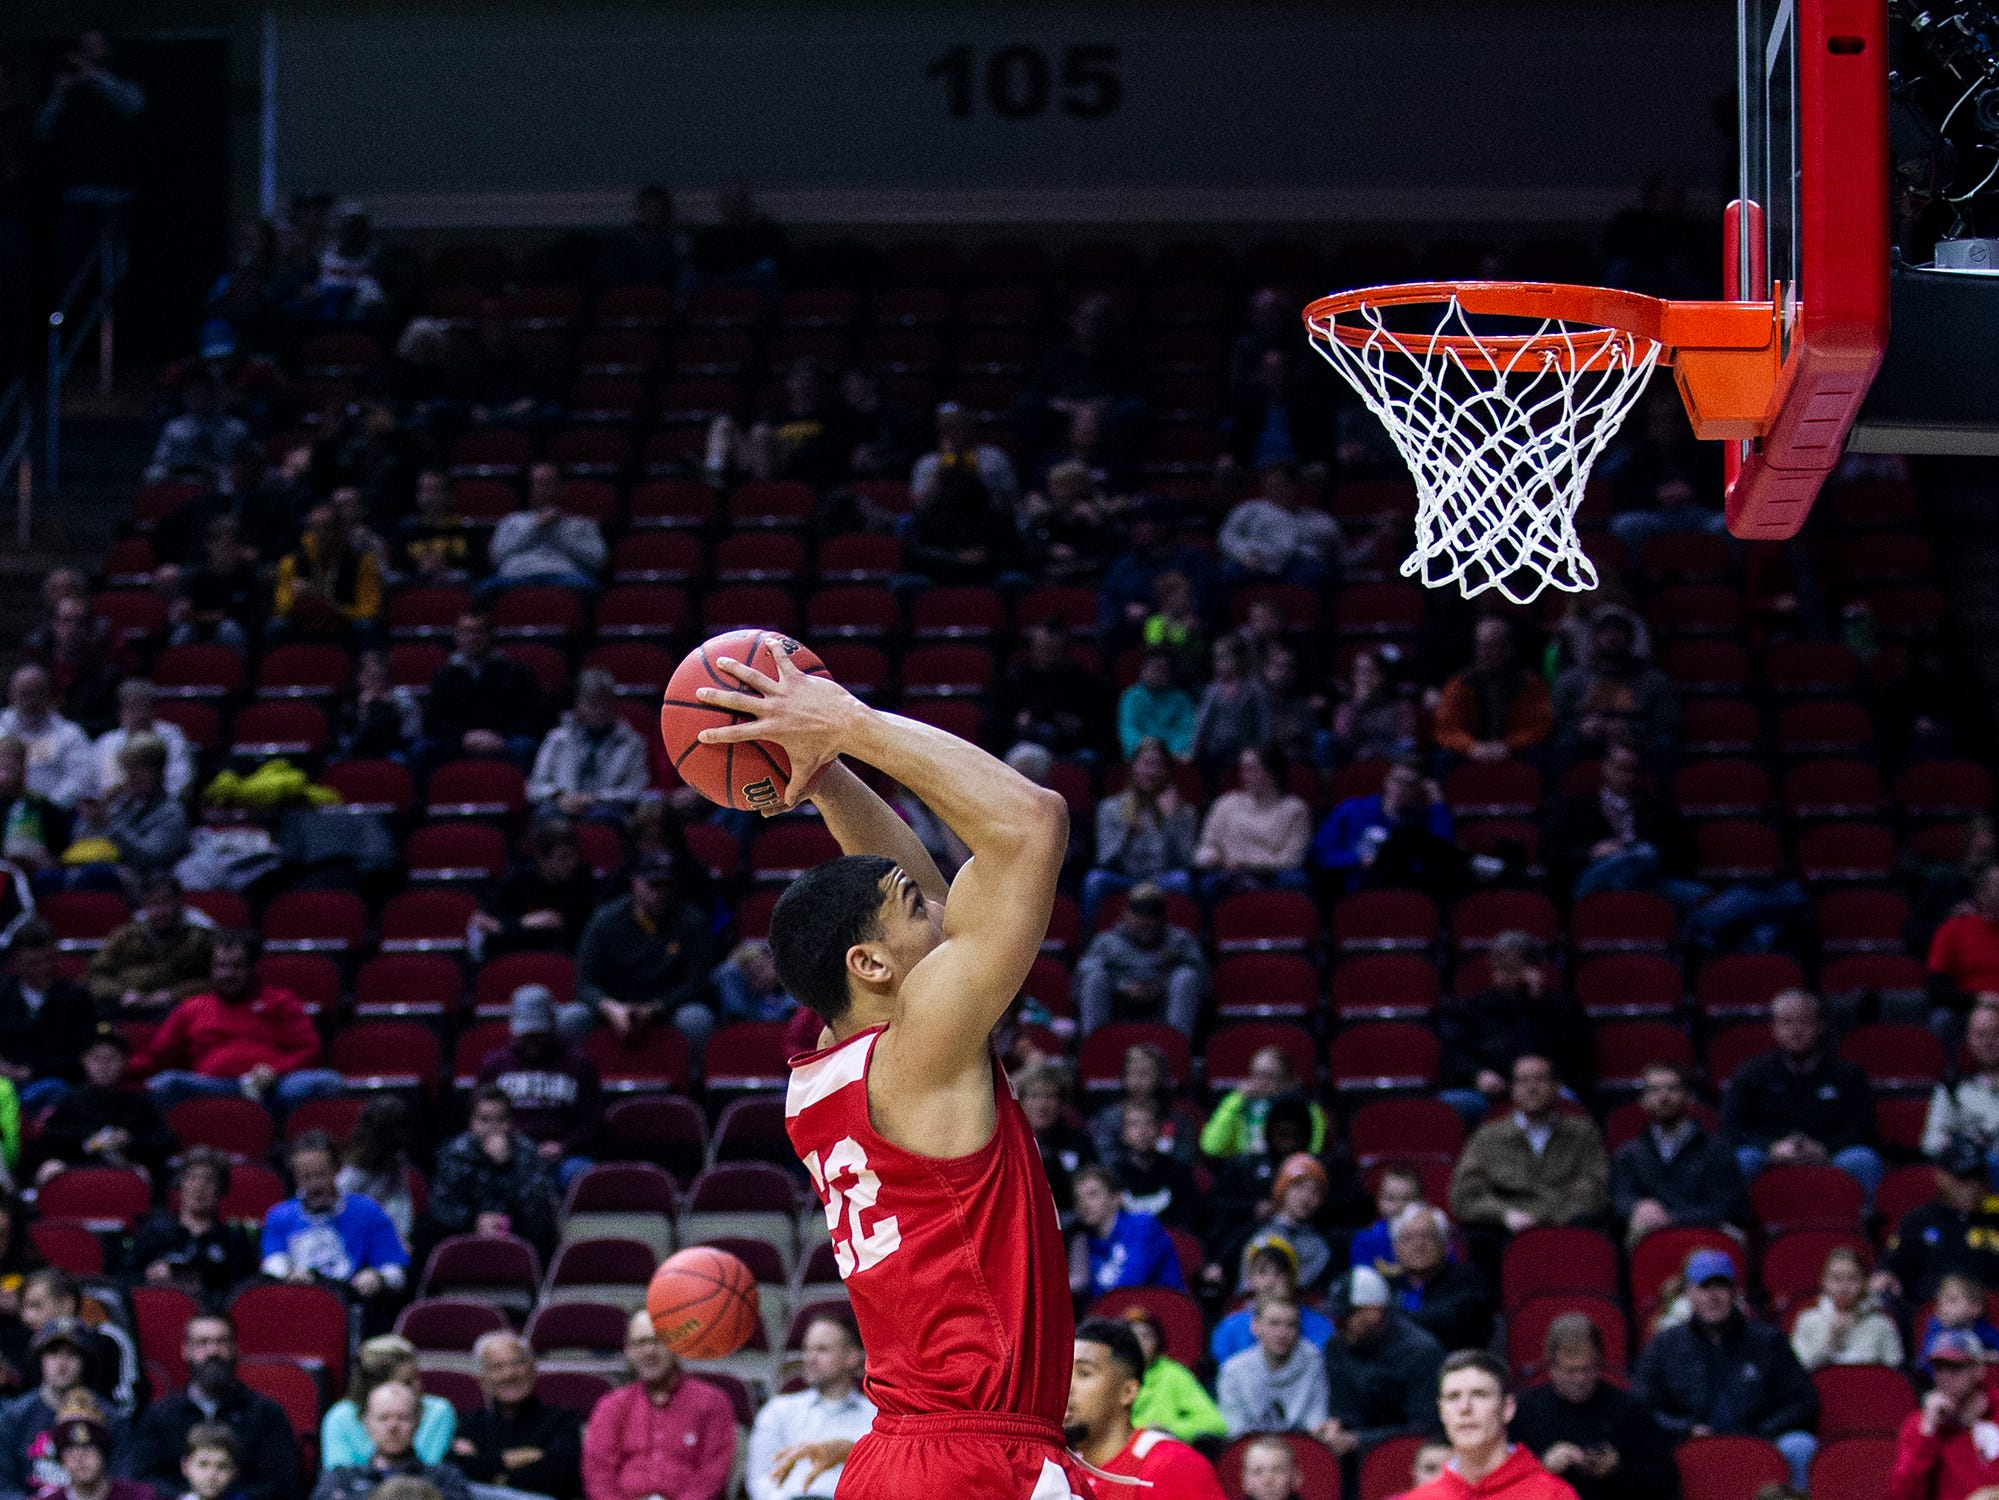 Bradley's Ja'Shon Henry shoots the ball during Bradley's open practice before the first round of the NCAA Men's Basketball Tournament on Wednesday, March 20, 2019, at Wells Fargo Arena in Des Moines, Iowa.